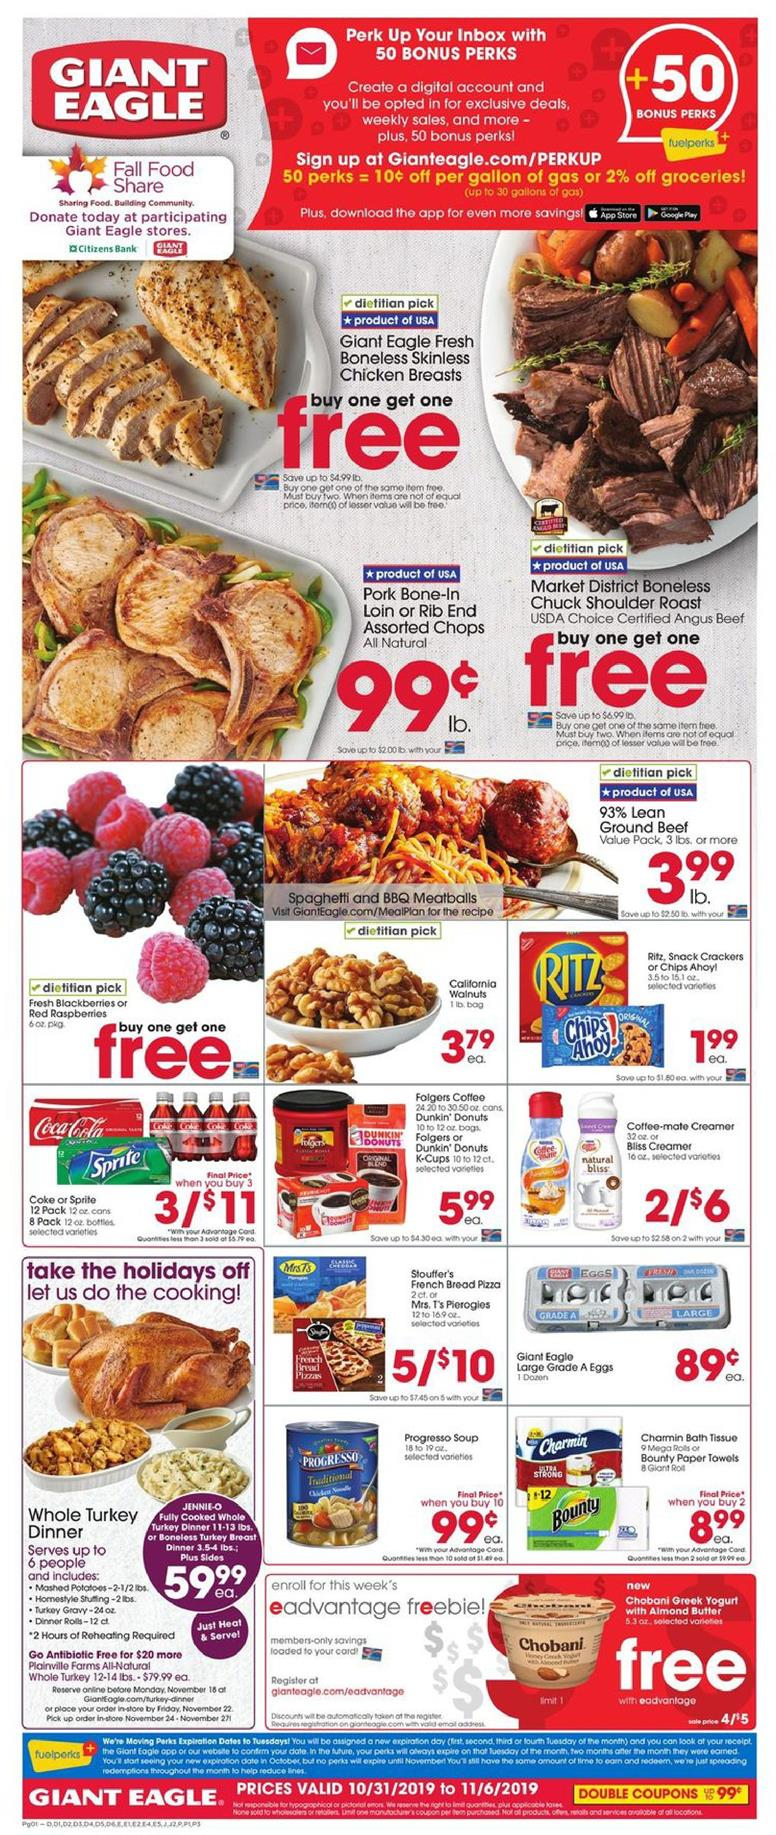 giant eagle fresh produce ad valid from oct 31 nov 6 2019